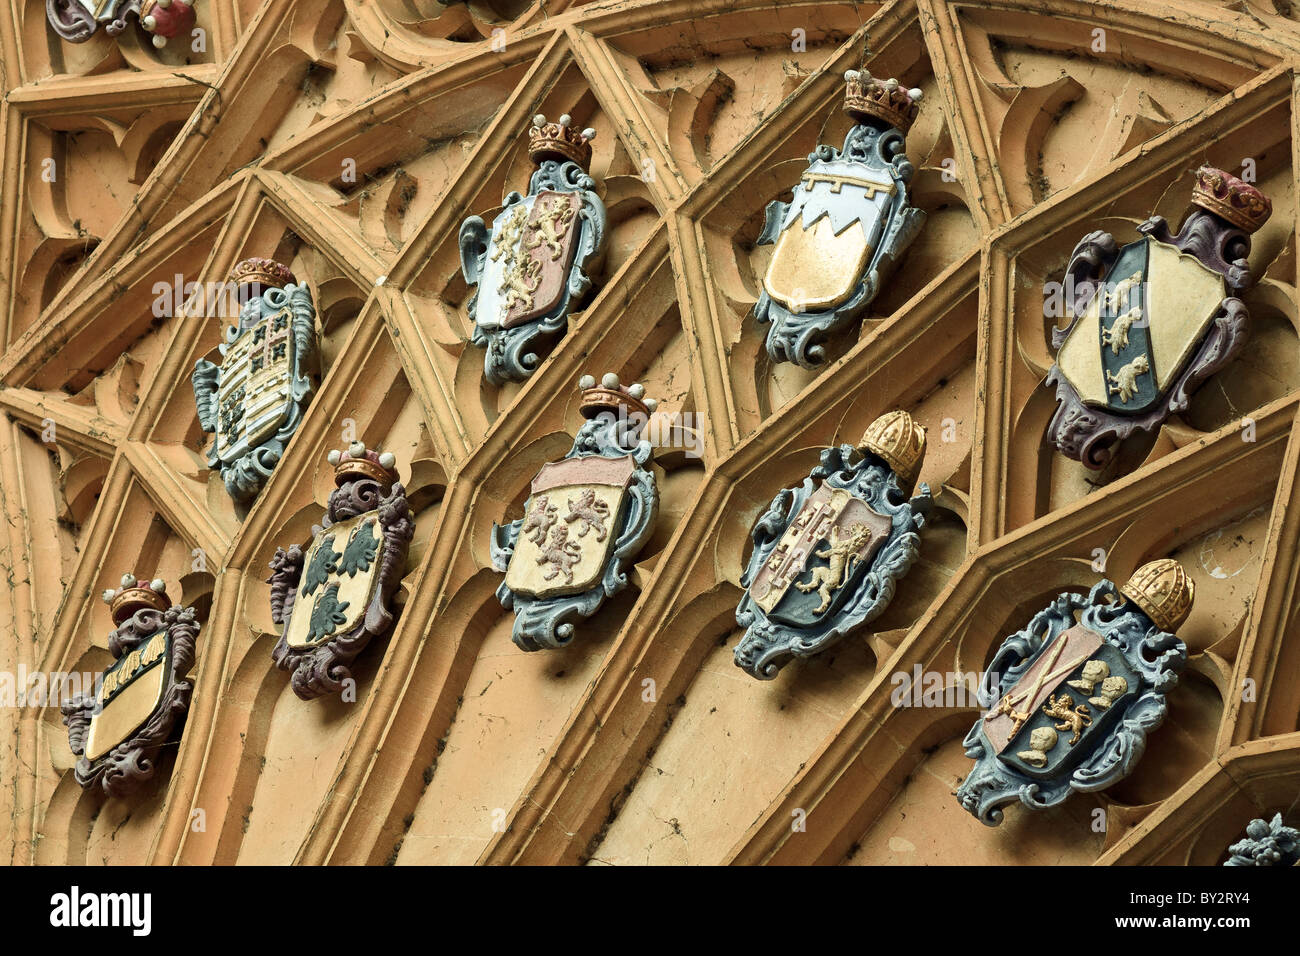 UK Oxford Ceiling Mounted Emblems Tom Tower - Stock Image